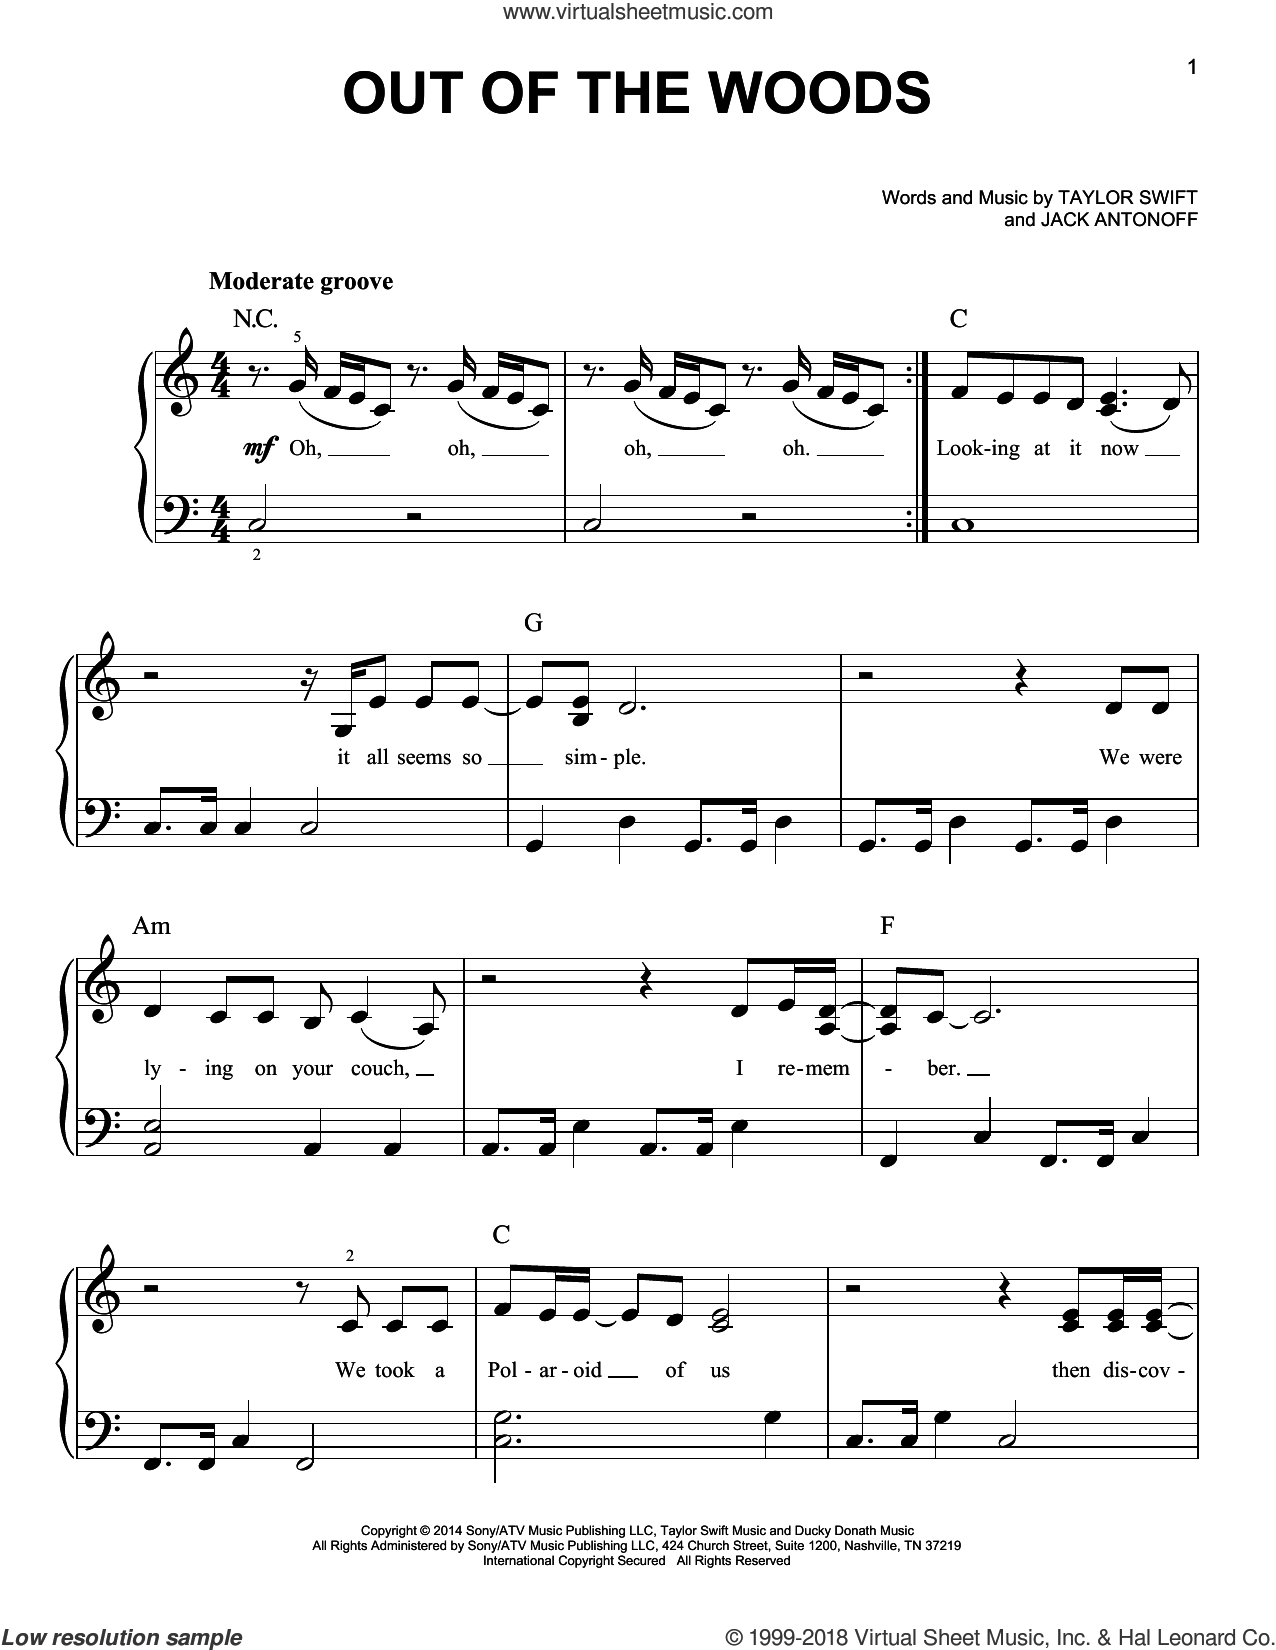 Out Of The Woods sheet music for piano solo by Jack Antonoff and Taylor Swift. Score Image Preview.